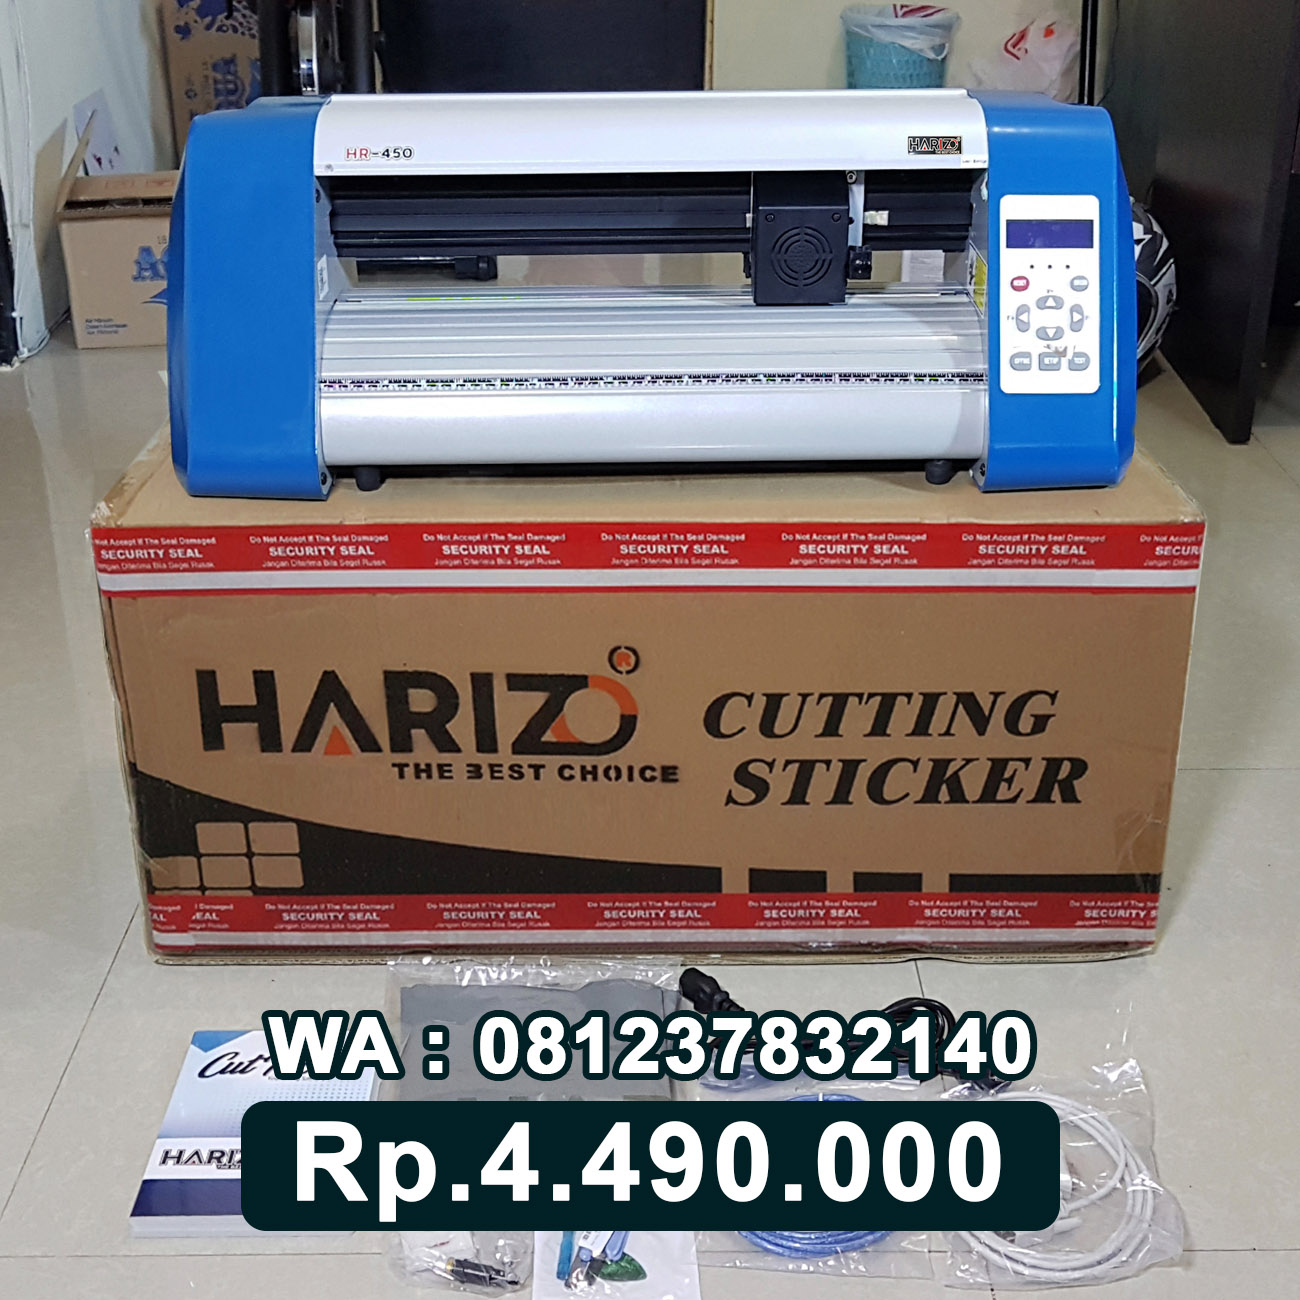 JUAL MESIN CUTTING STICKER HARIZO 450 Sangatta